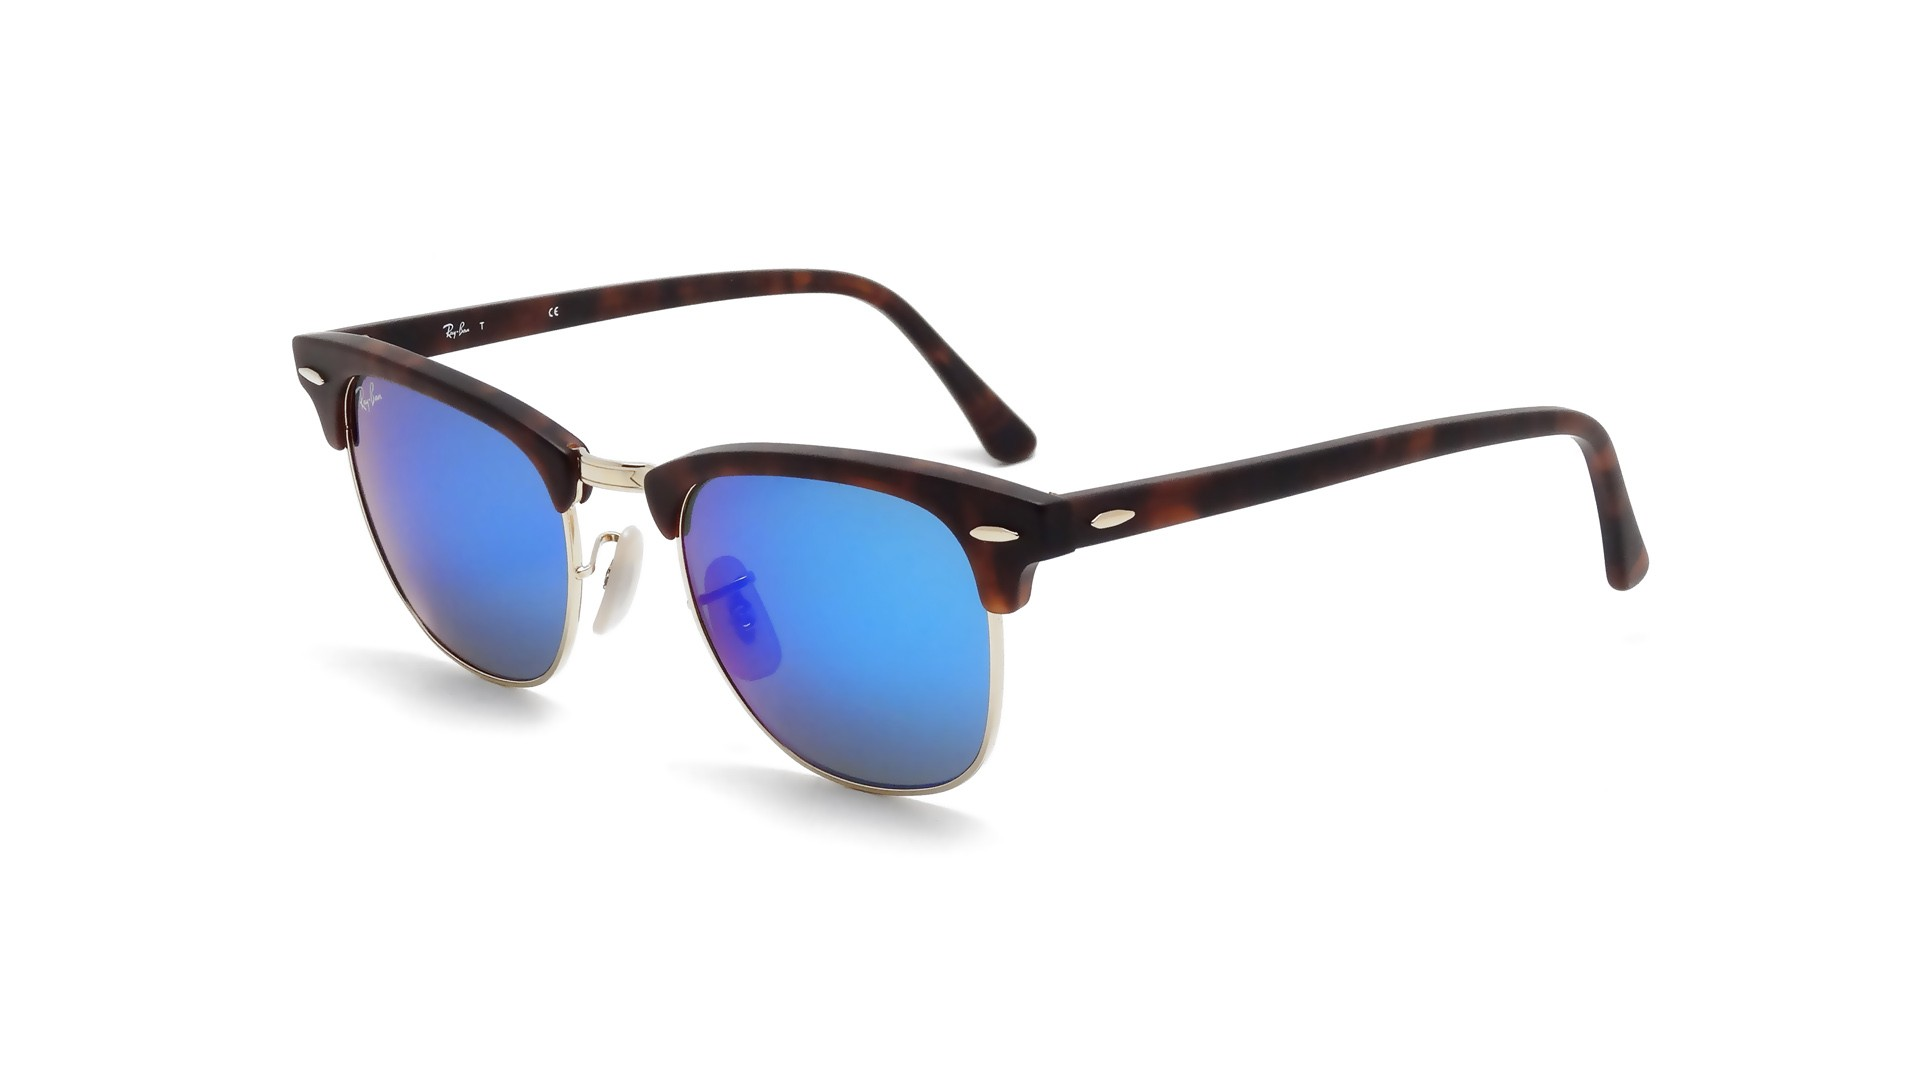 f122bd6bd806bc Ray-Ban Clubmaster Écaille Mat RB3016 1145 17 49-21   Prix 87,92 €    Visiofactory